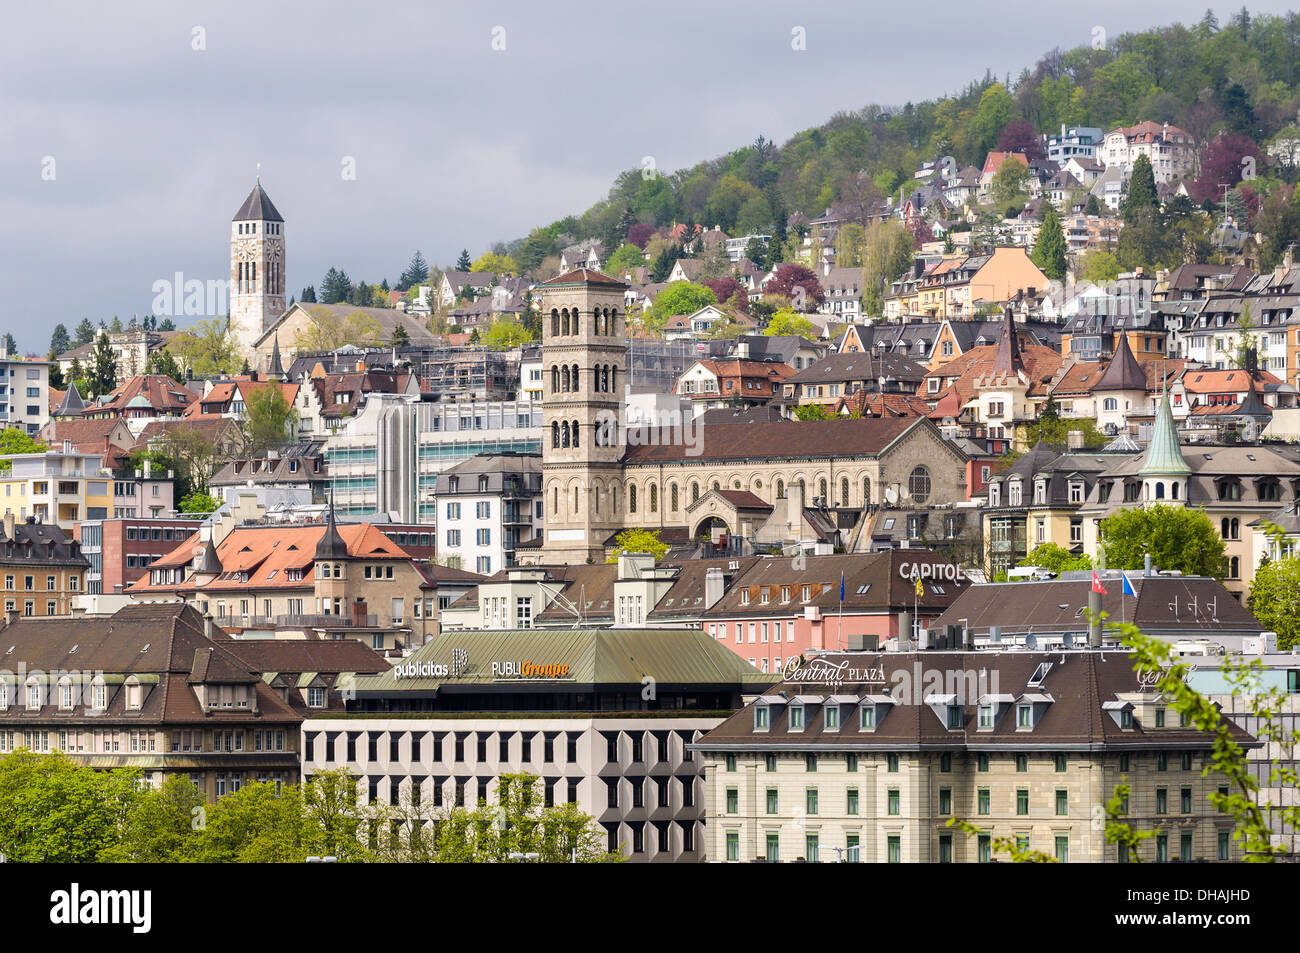 Zurich, Switzerland: Old city center - Stock Image